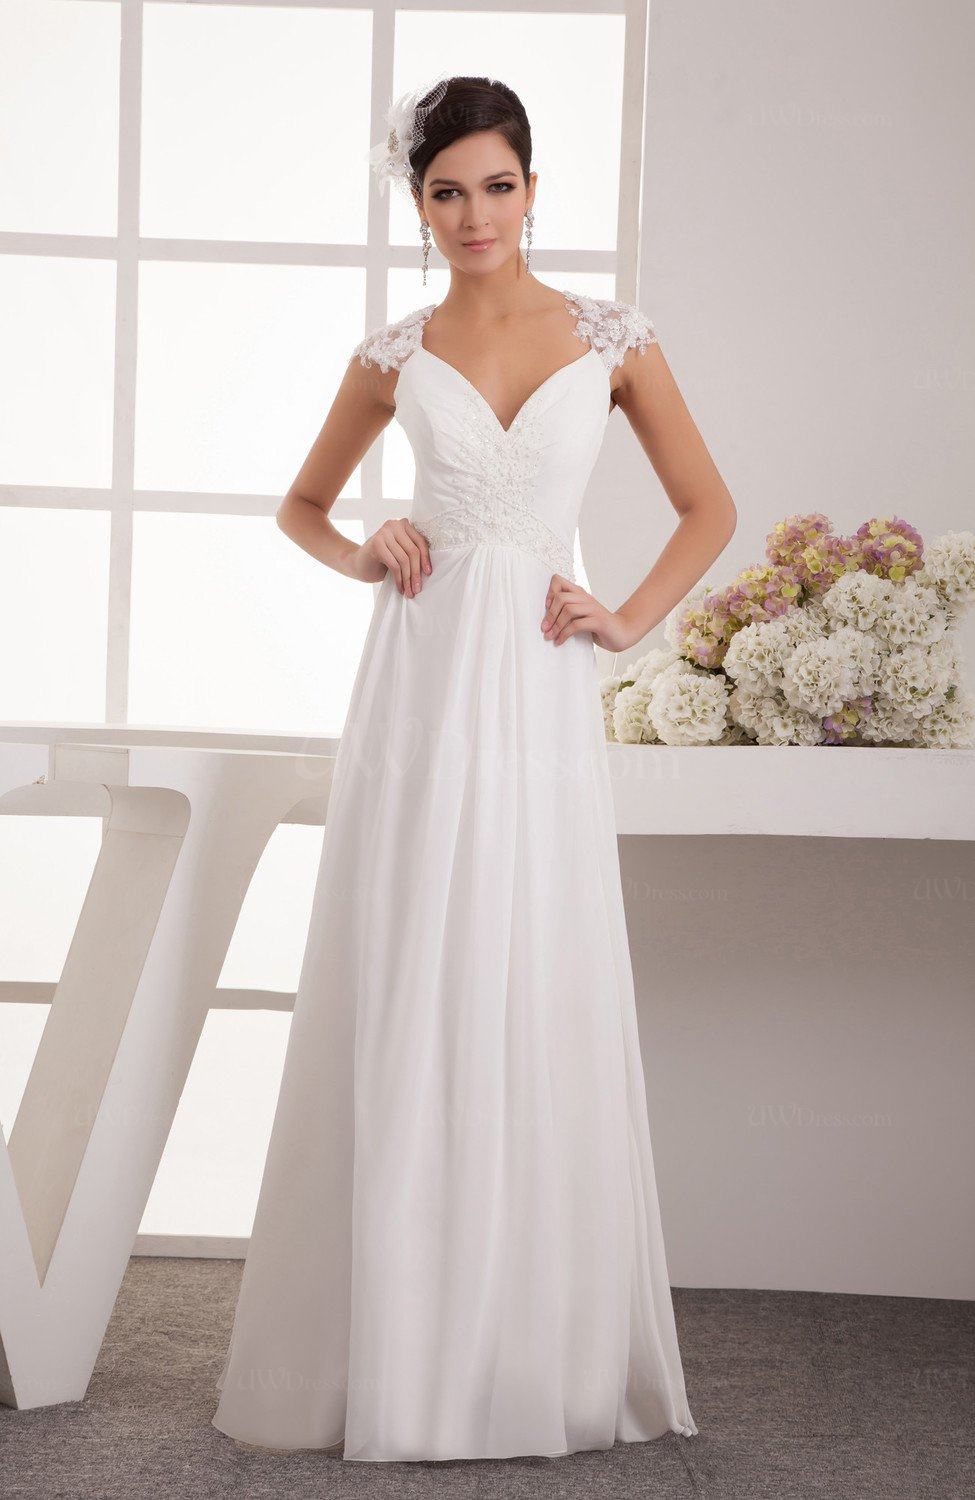 adf97a62cdc3b Lace Prom Dress with Sleeves Glamorous Formal Elegant Beaded Sparkly Spring  (Style D62808)